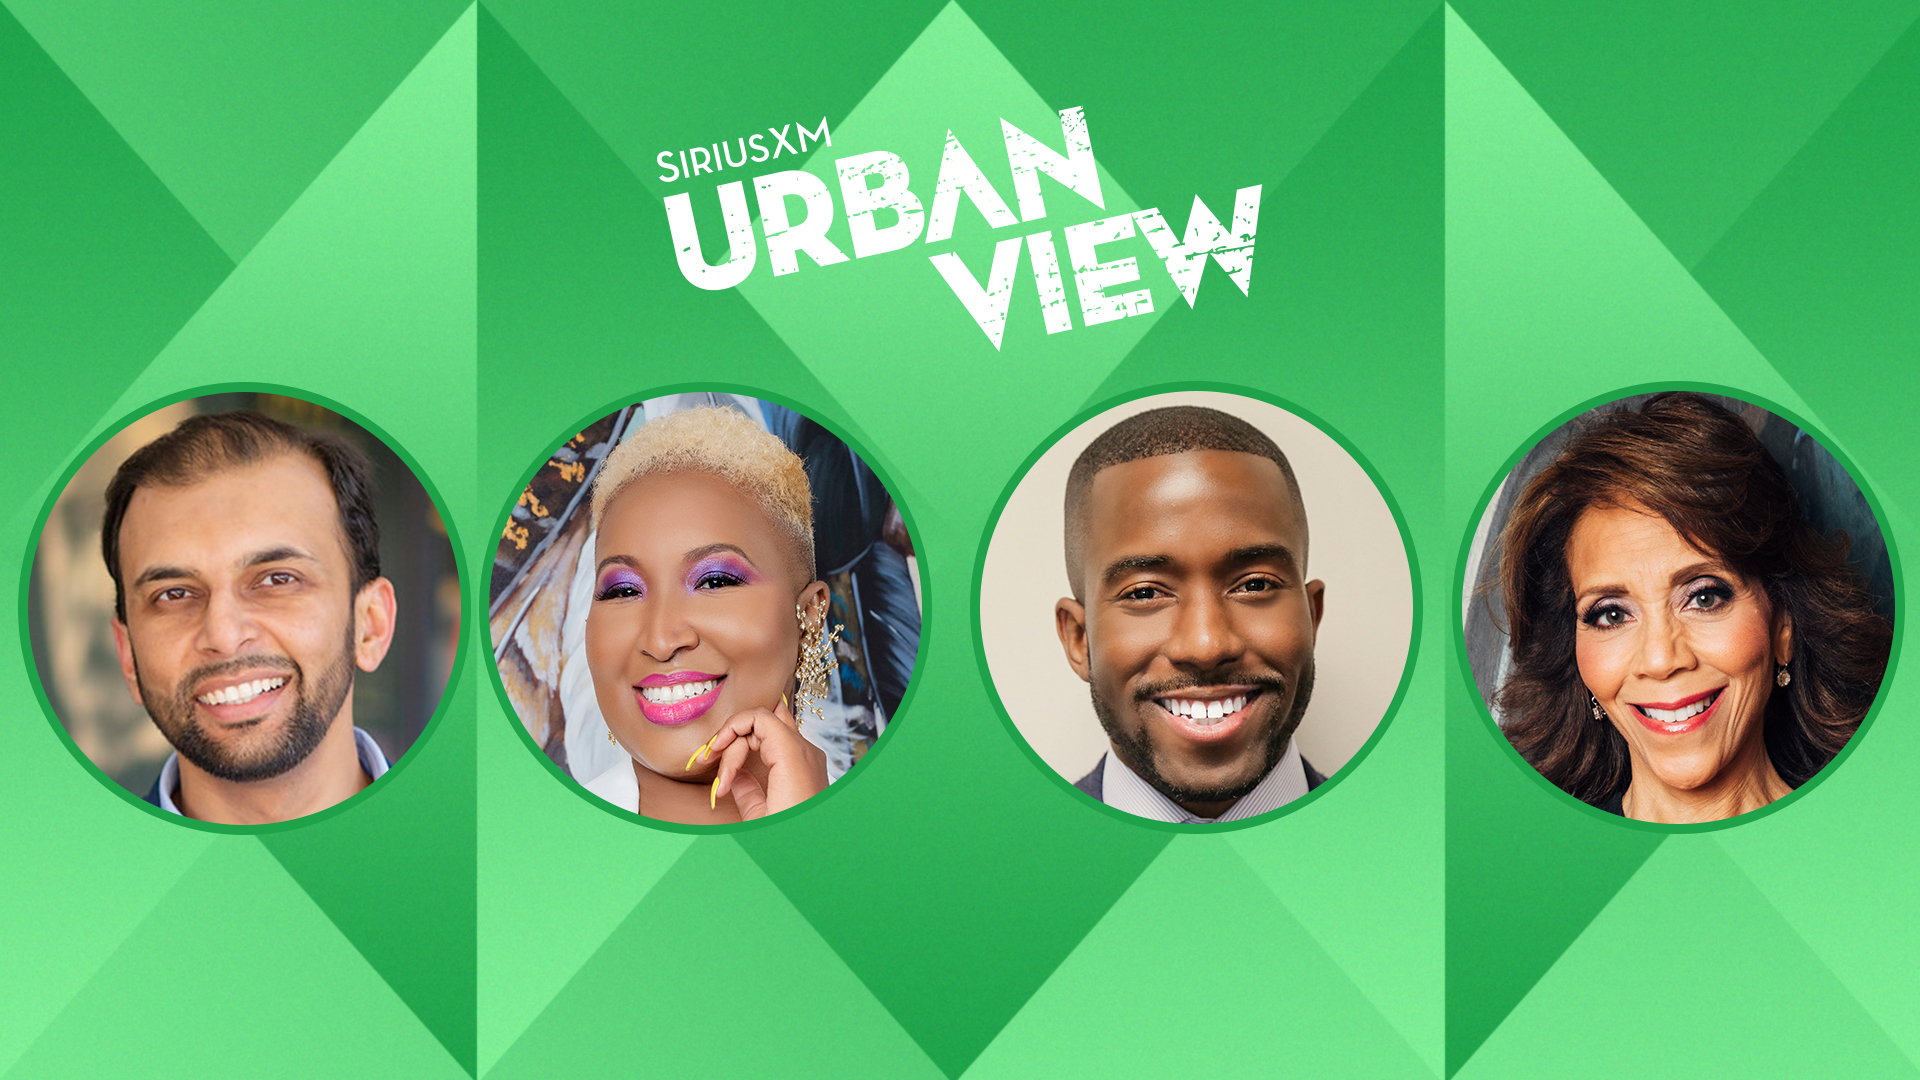 Check out Urban View's all-new weekend shows featuring prominent Black voices